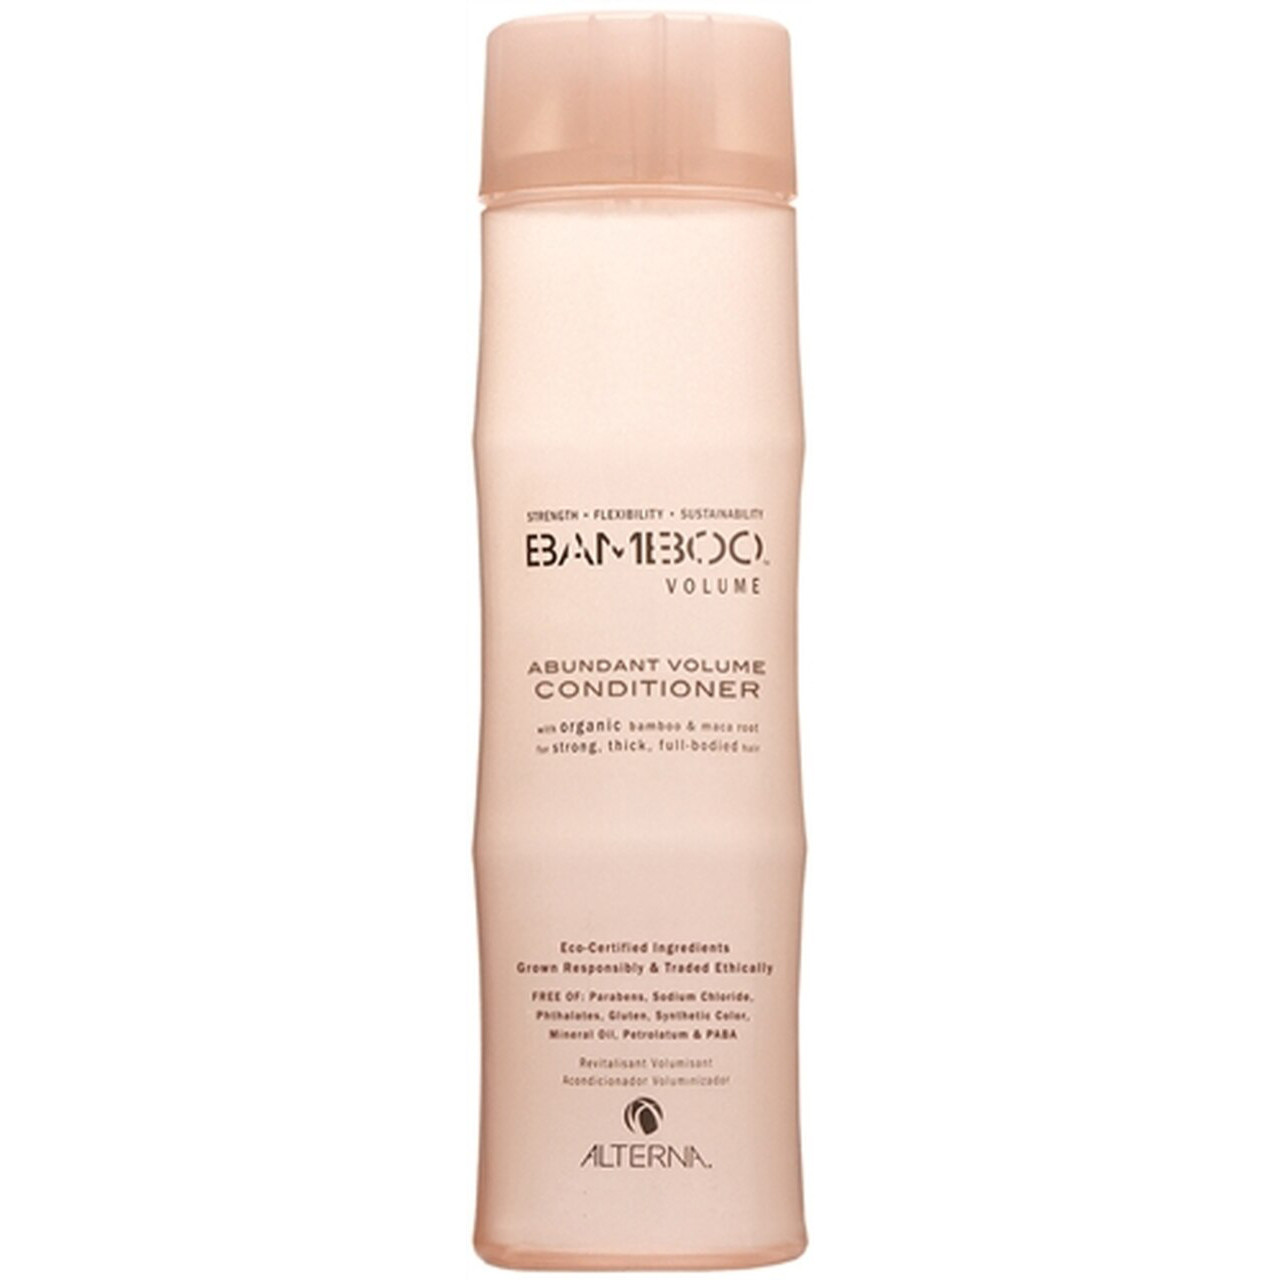 Alterna Bamboo Abundant Volume Conditioner - 8.5 OZ